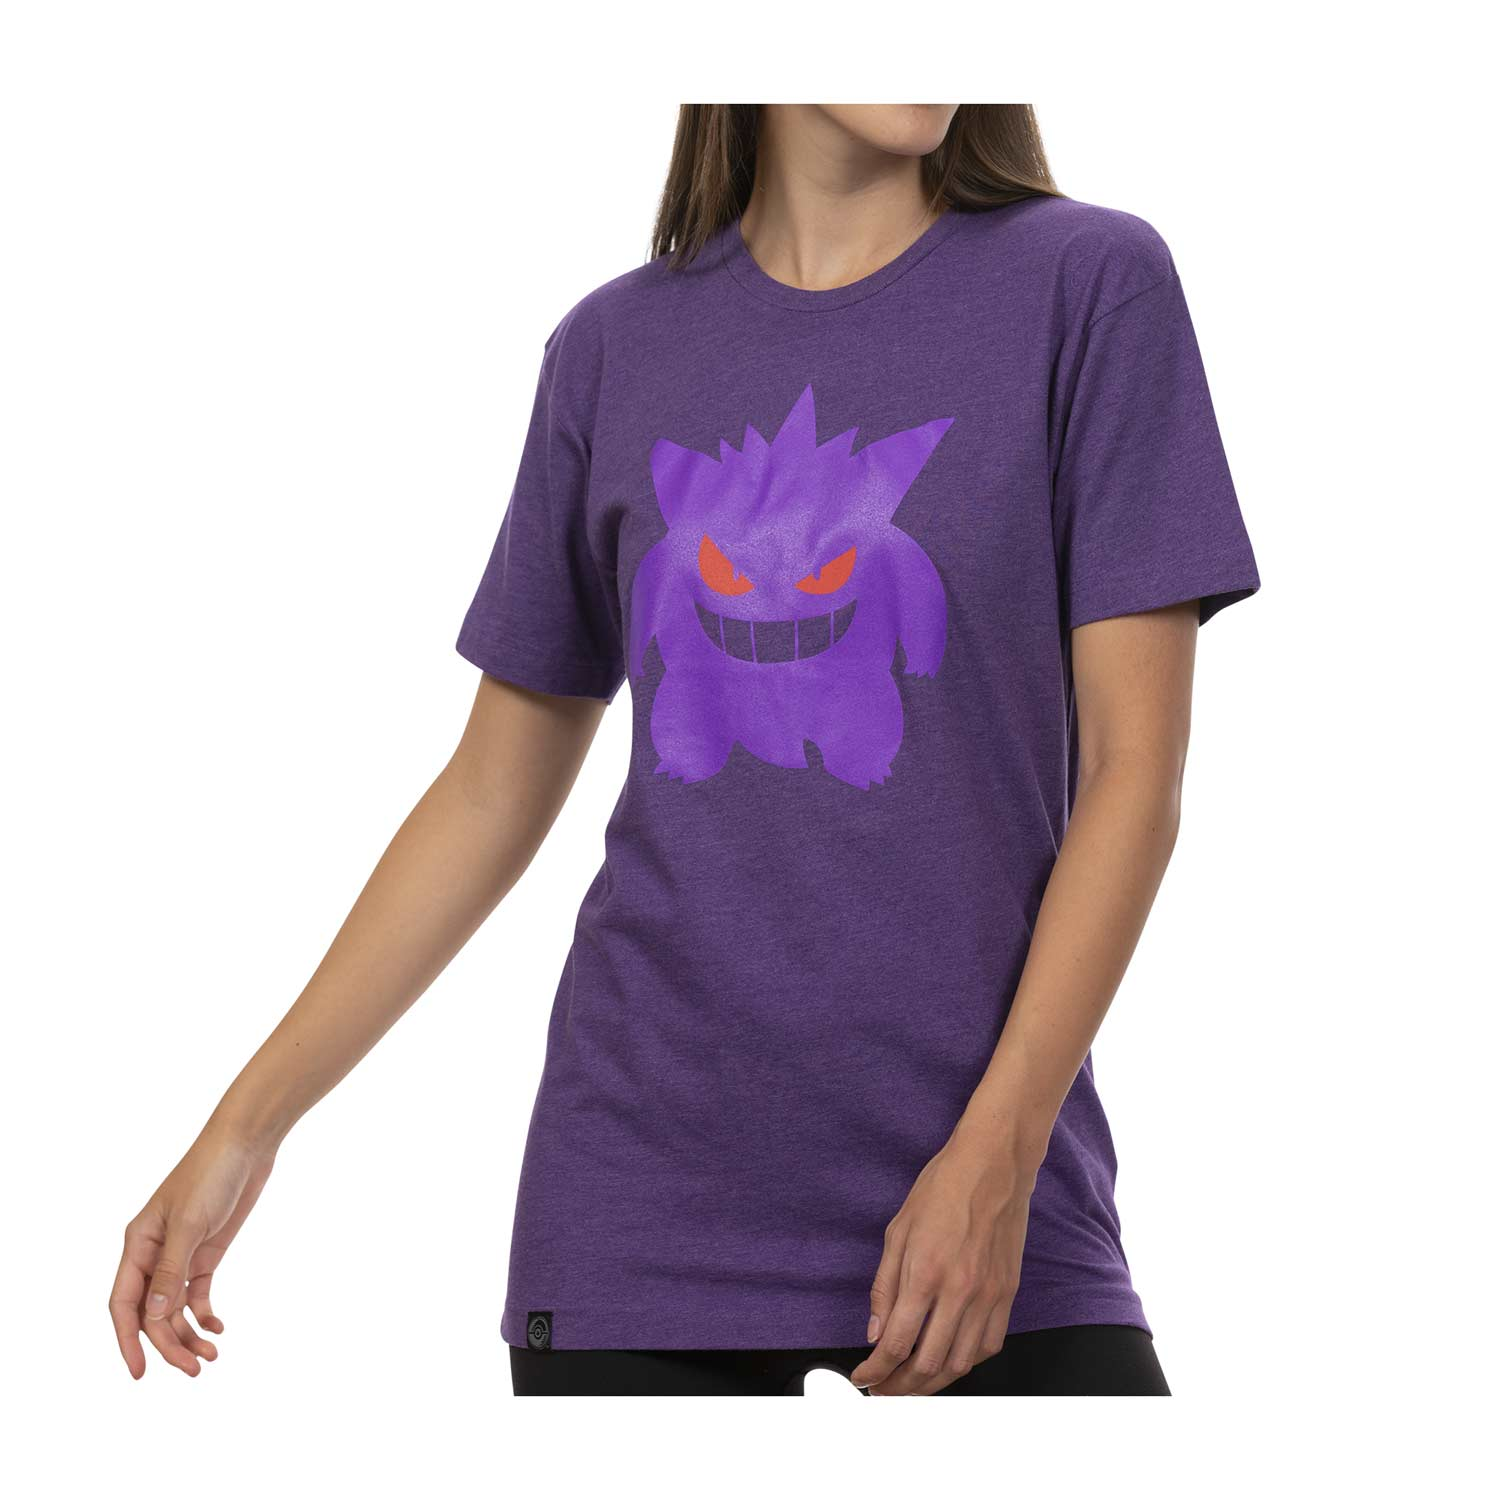 Eyes_of_Gengar_T-Shirt_(Heather_Purple)_Product_Image.jpg